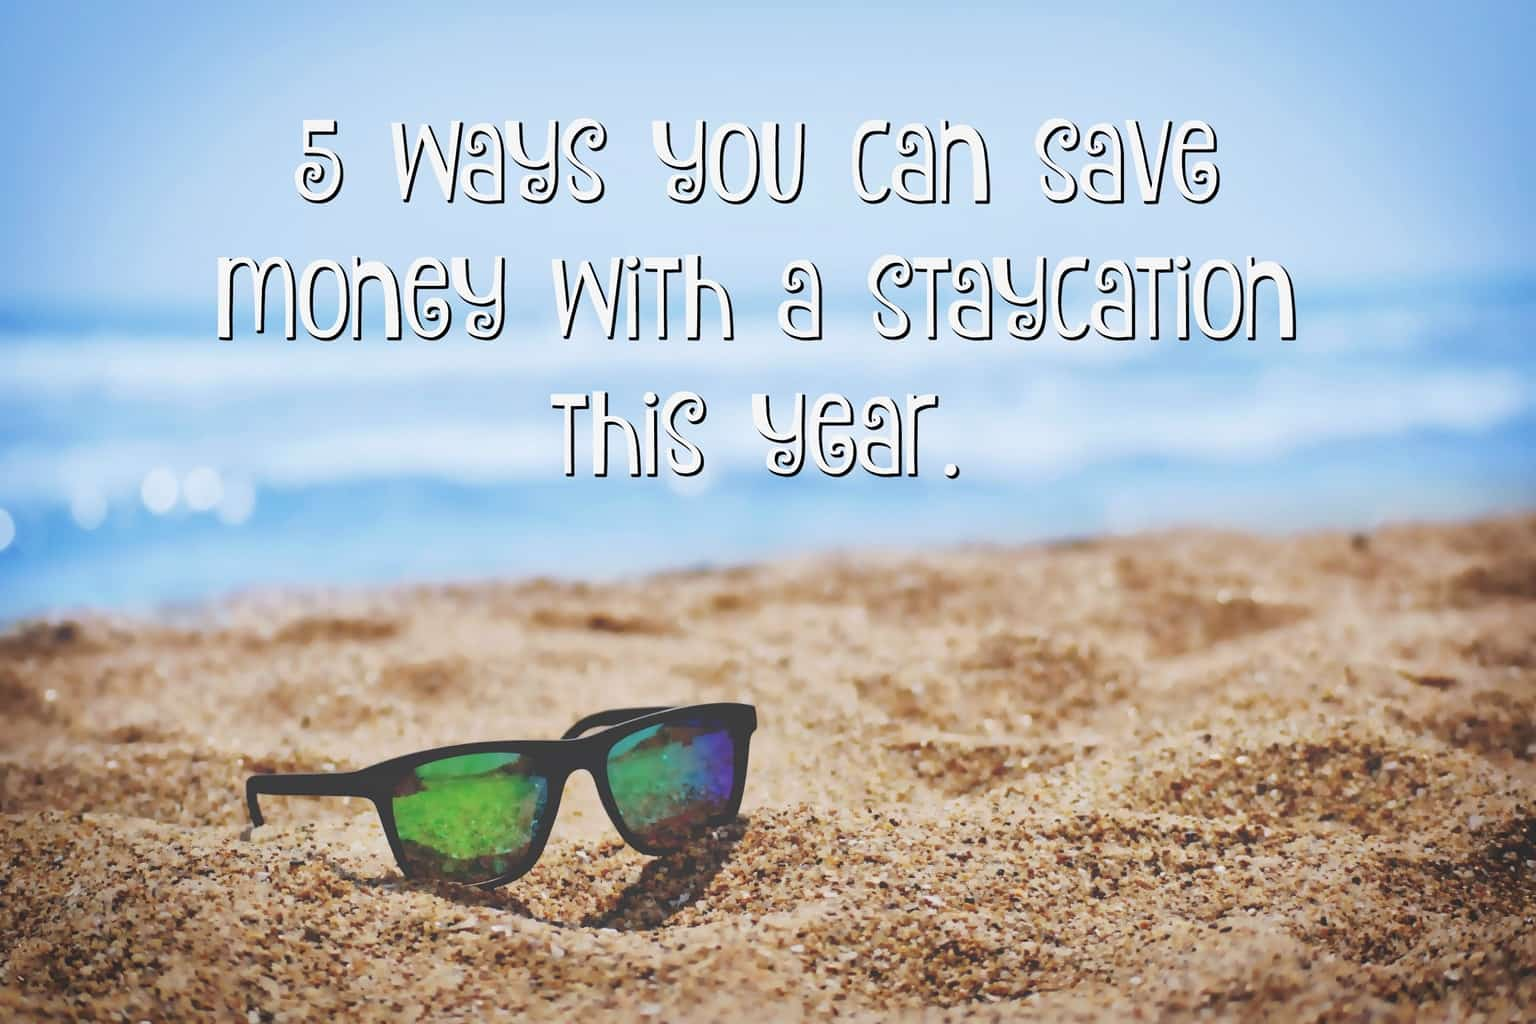 5 ways you can save money with a staycation this year.